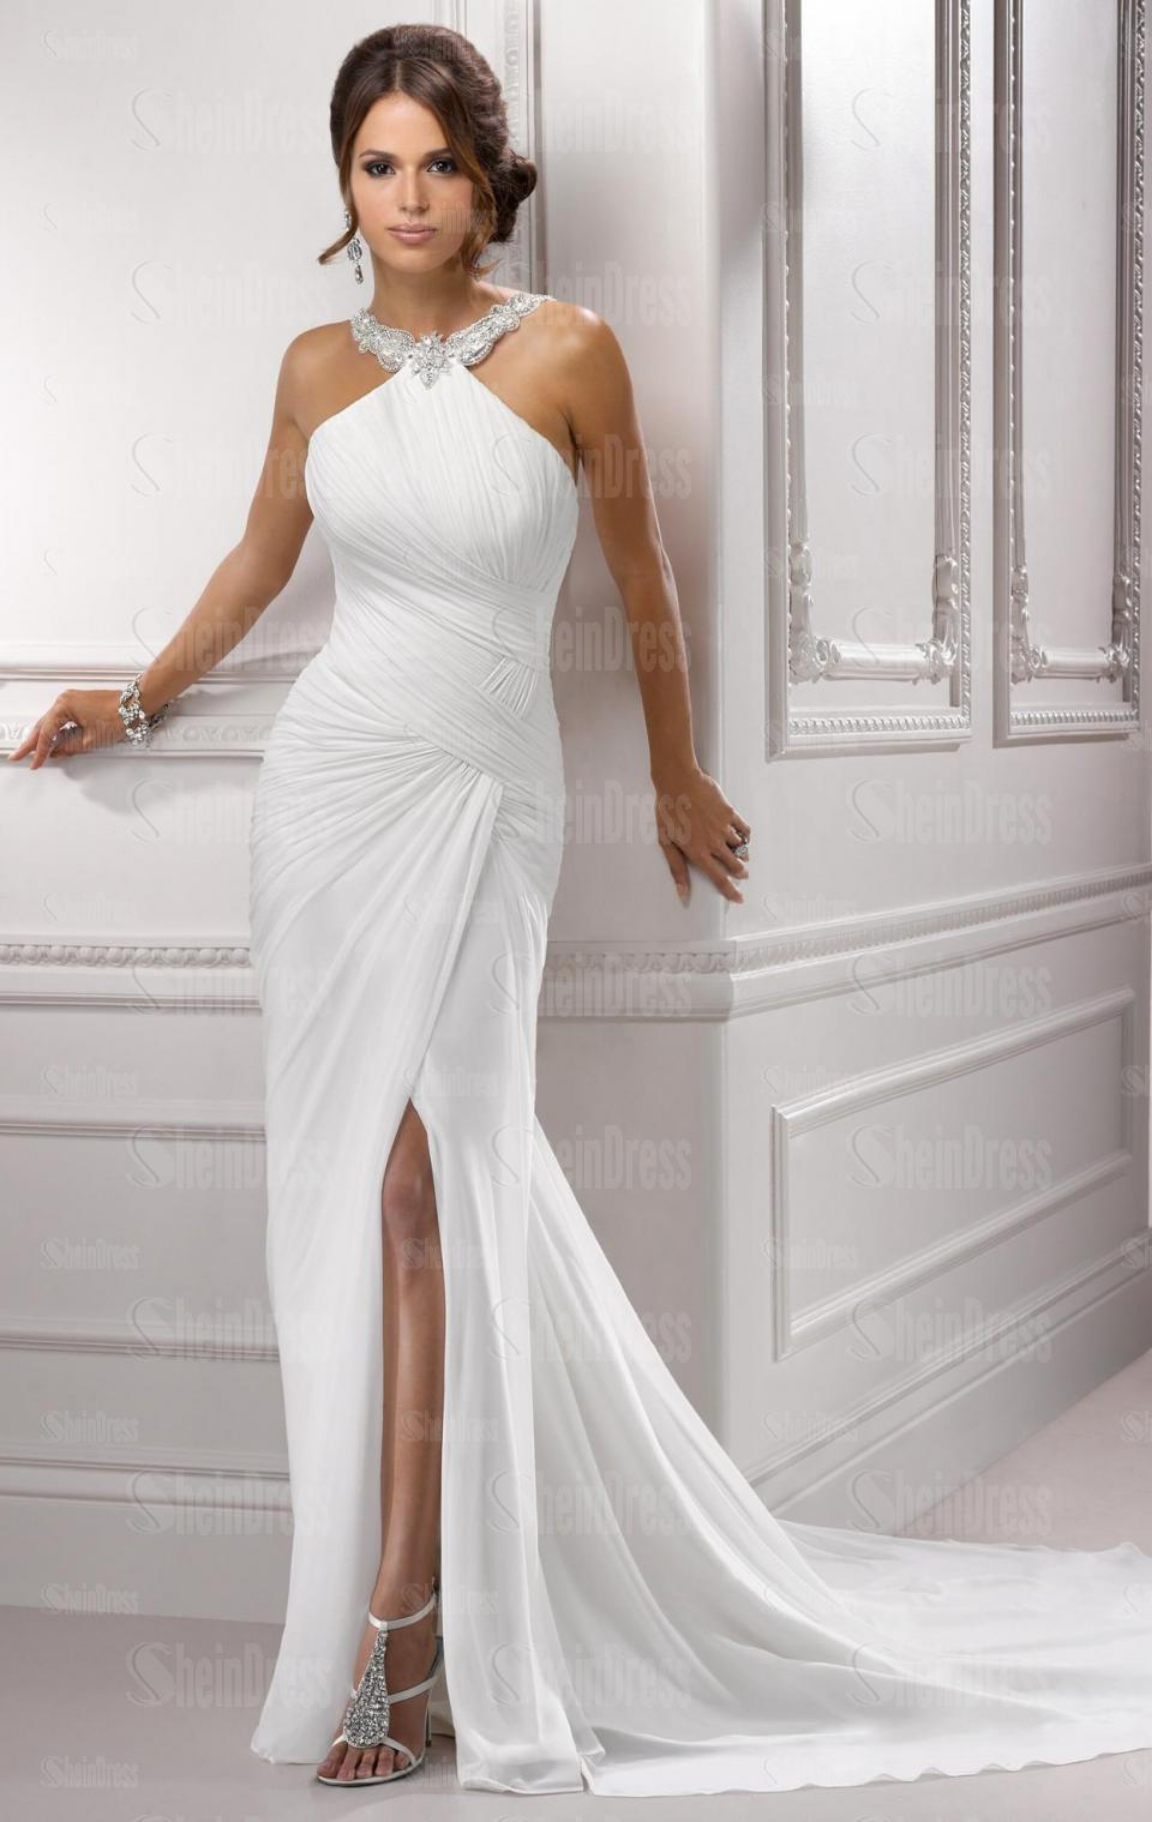 Shopping for a wedding dress on a budget? Find cheap wedding dresses under $ dollars in beautiful simple designs to glamorous gowns, at David's Bridal!